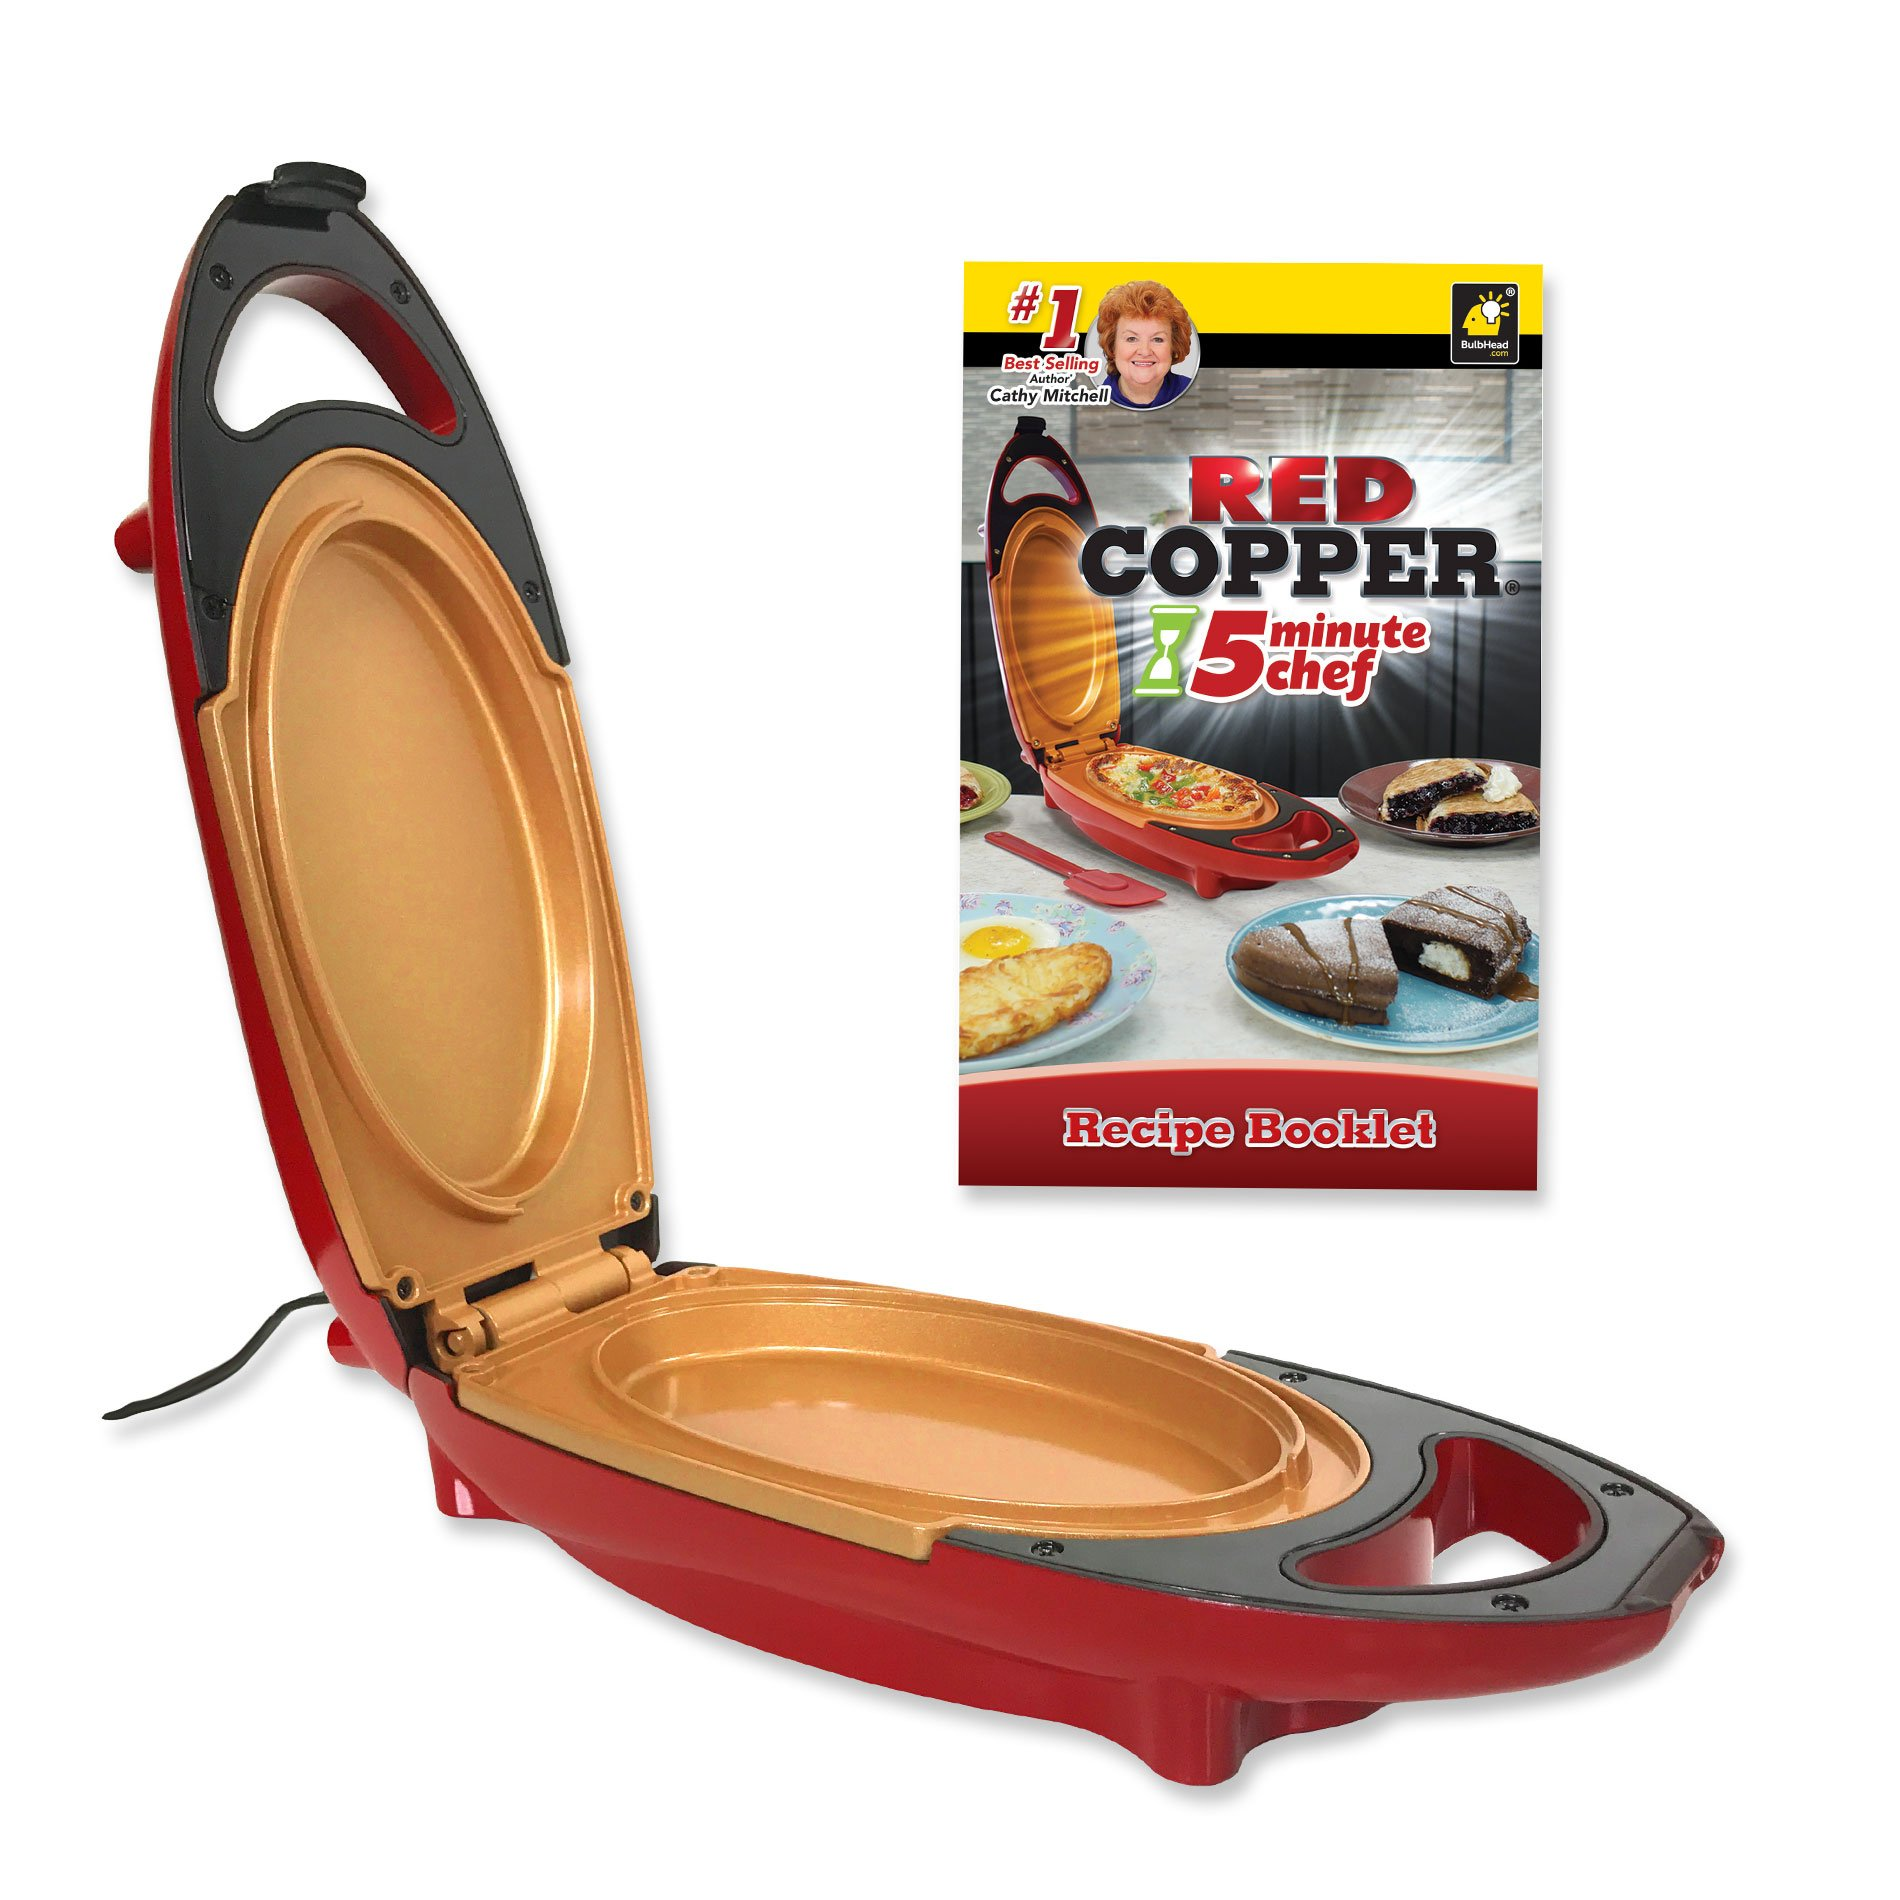 Red Copper 5 Minute Chef by BulbHead Includes Recipe Guide